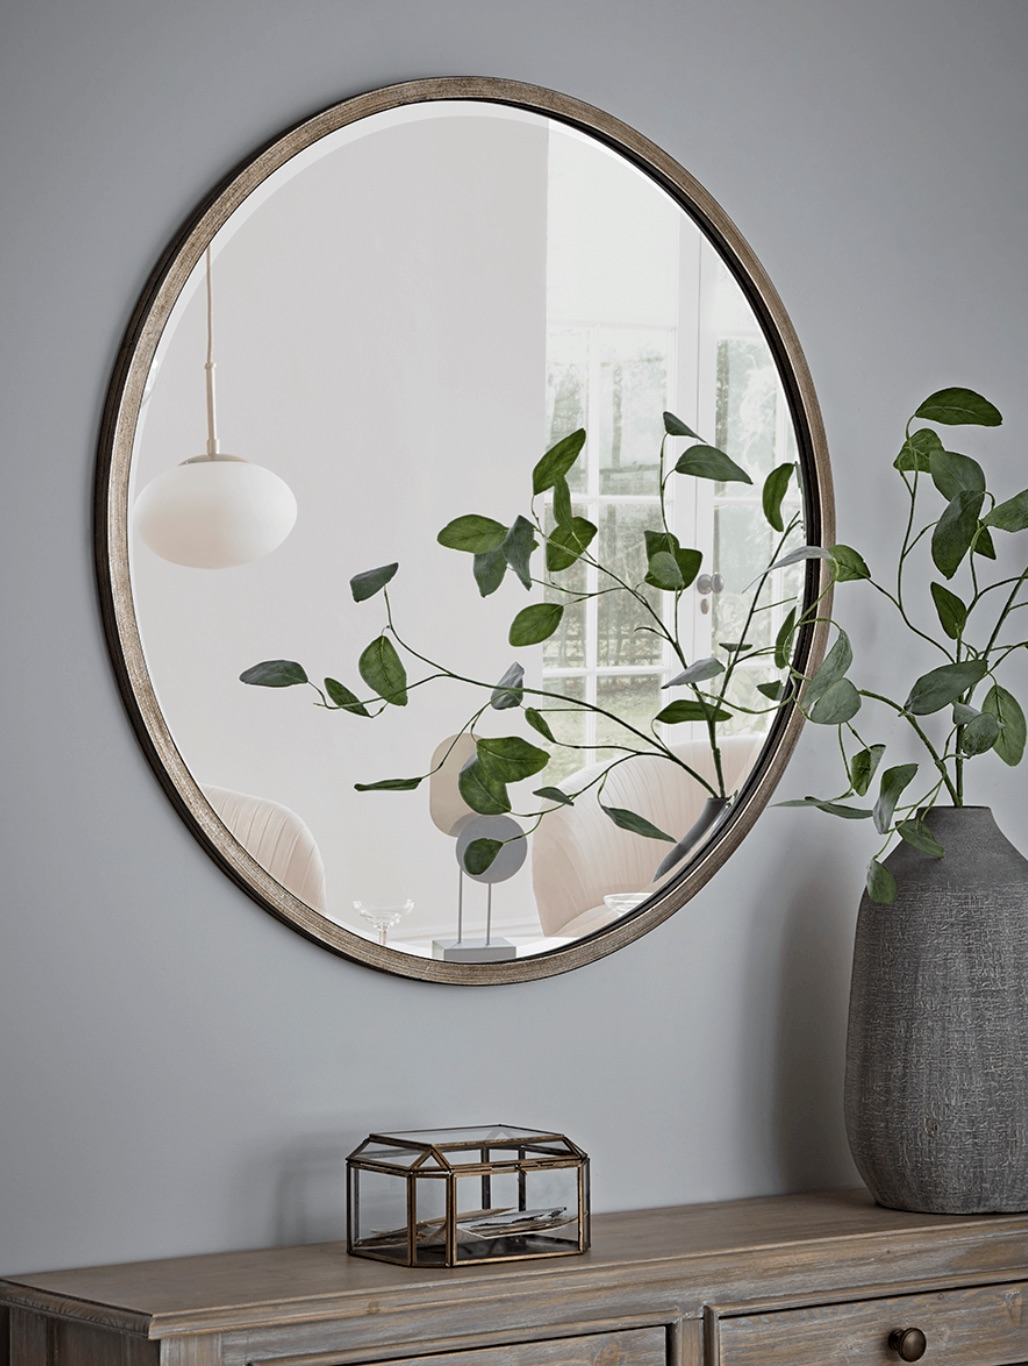 Image and mirror via  Cox & Cox . Mirrors are excellent for dining areas as it's believed that the doubling of the food symbolizes abundance for the household.